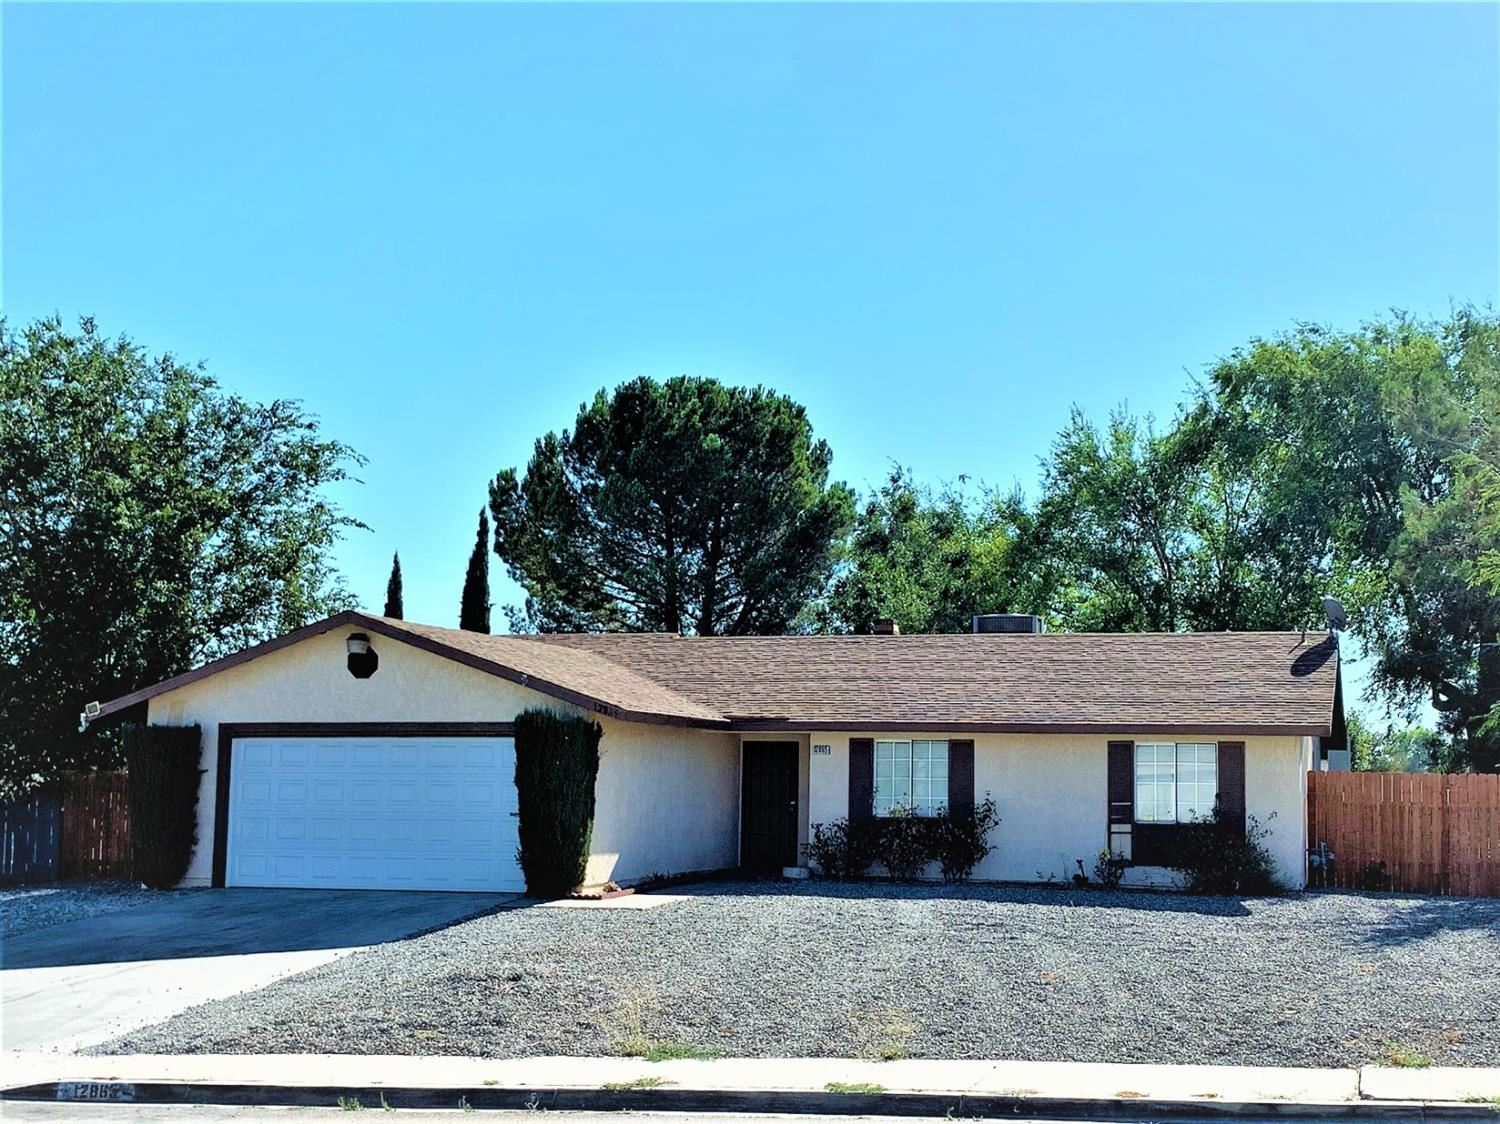 12865 2nd Avenue, Victorville, CA 92395 - MLS#: 520687